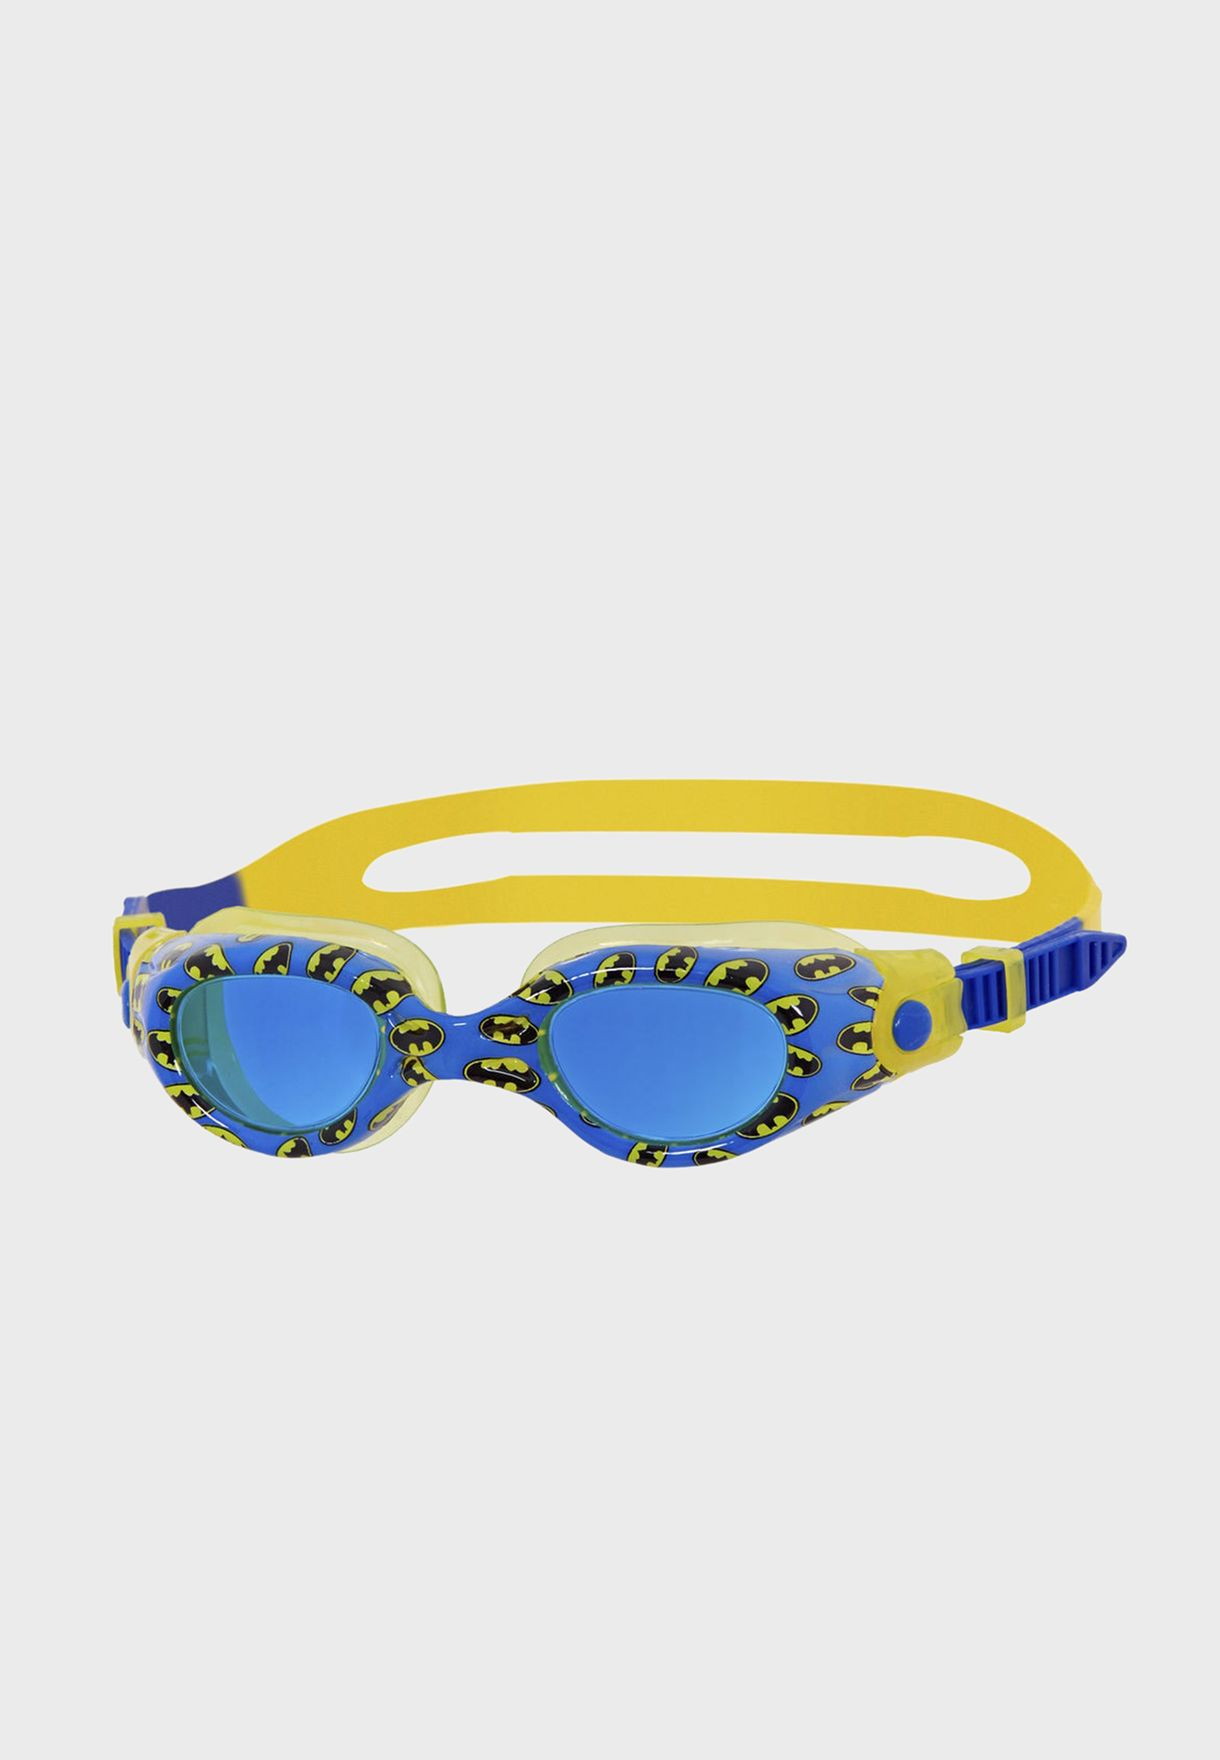 Youth Batman Swimming Goggles